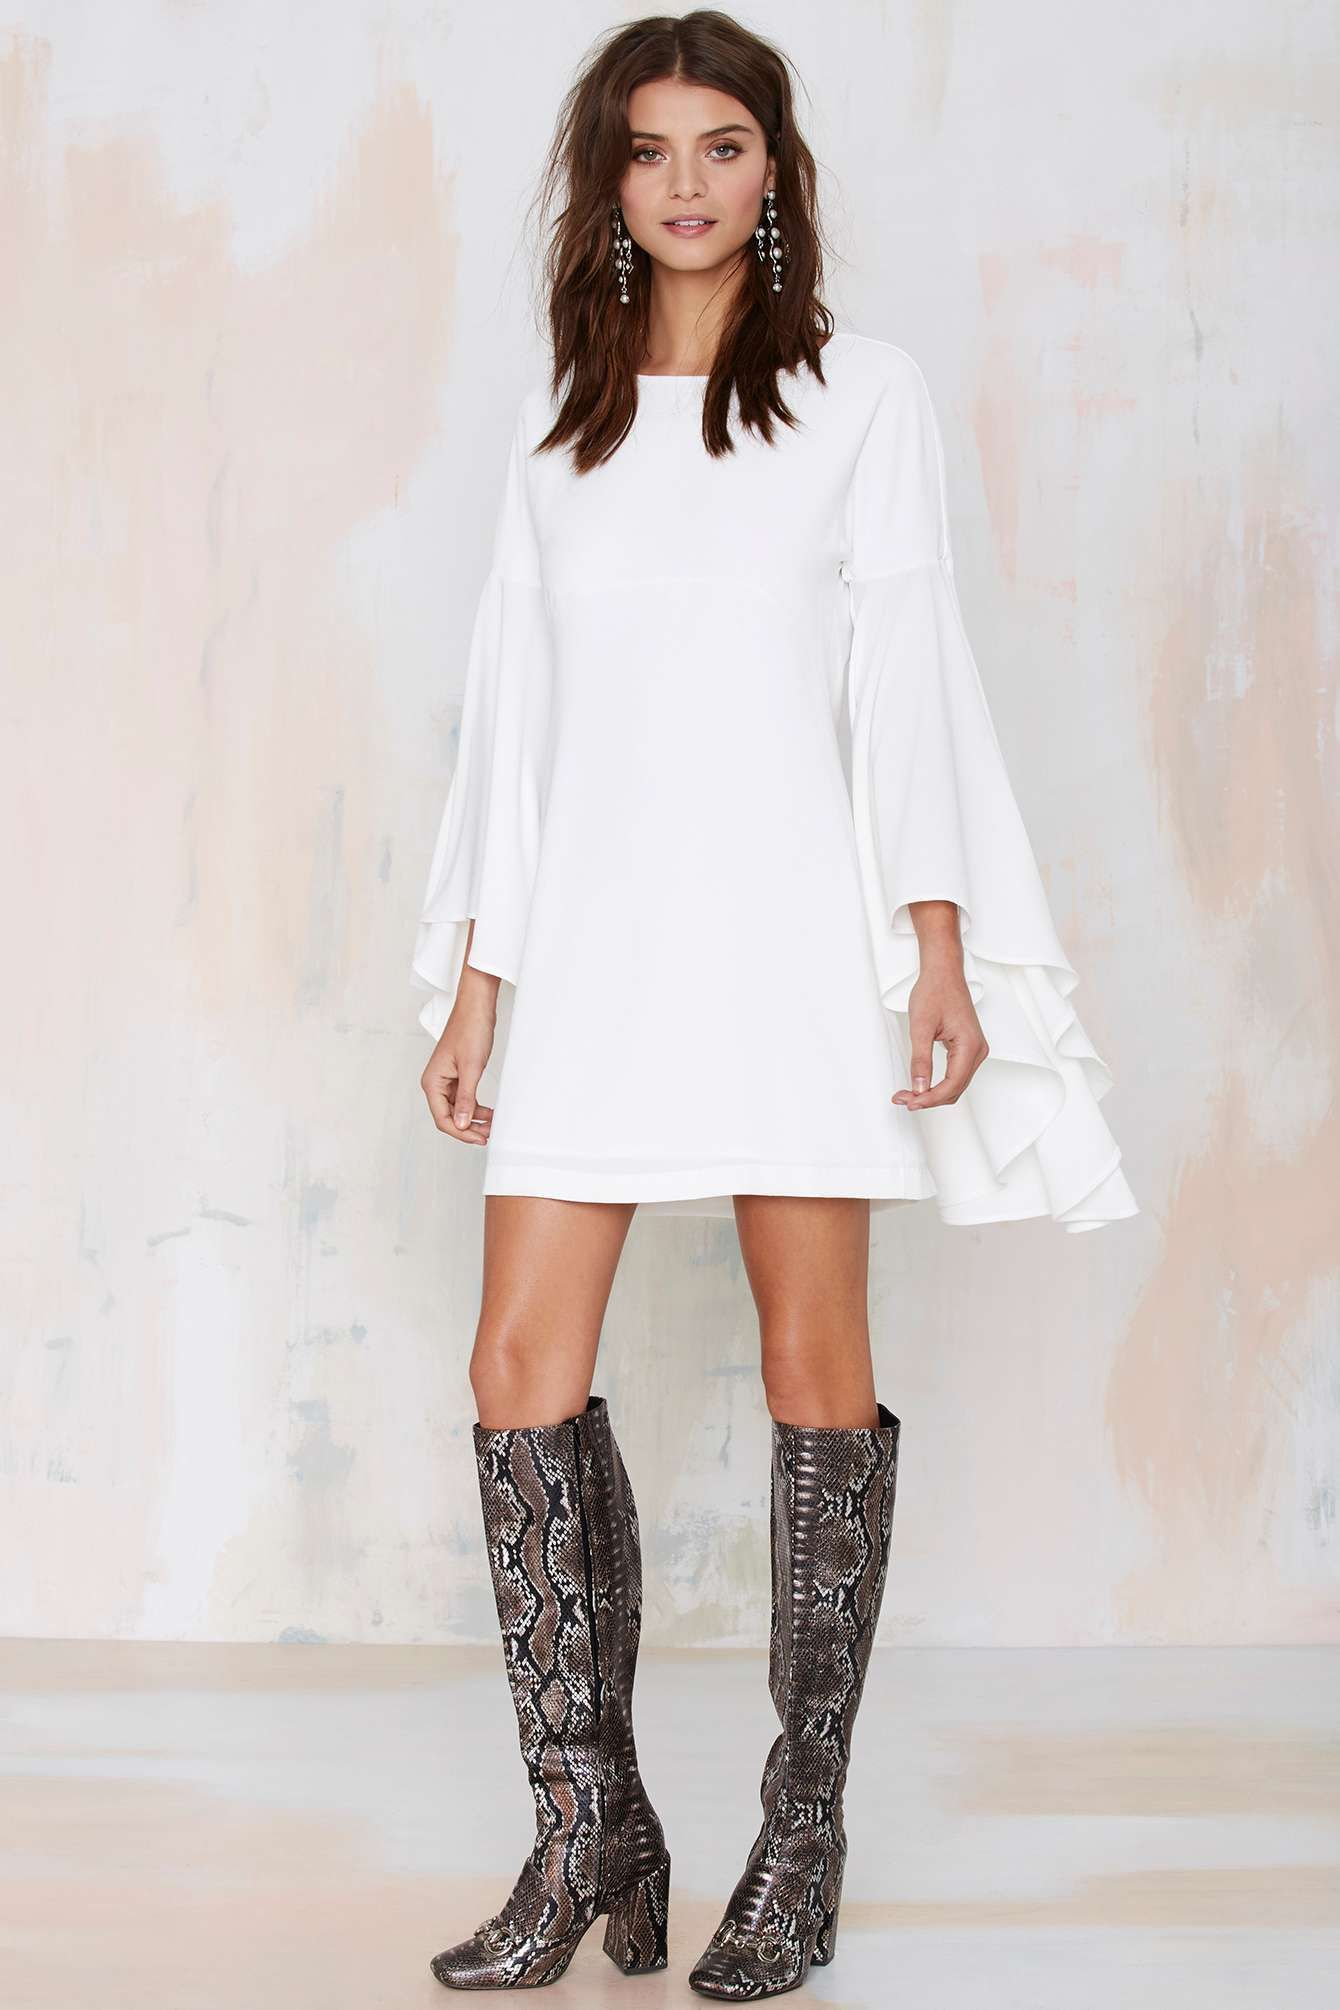 Nasty Gal Hells Bells Crepe Dress - Ivory | Shop Clothes at Nasty Gal!